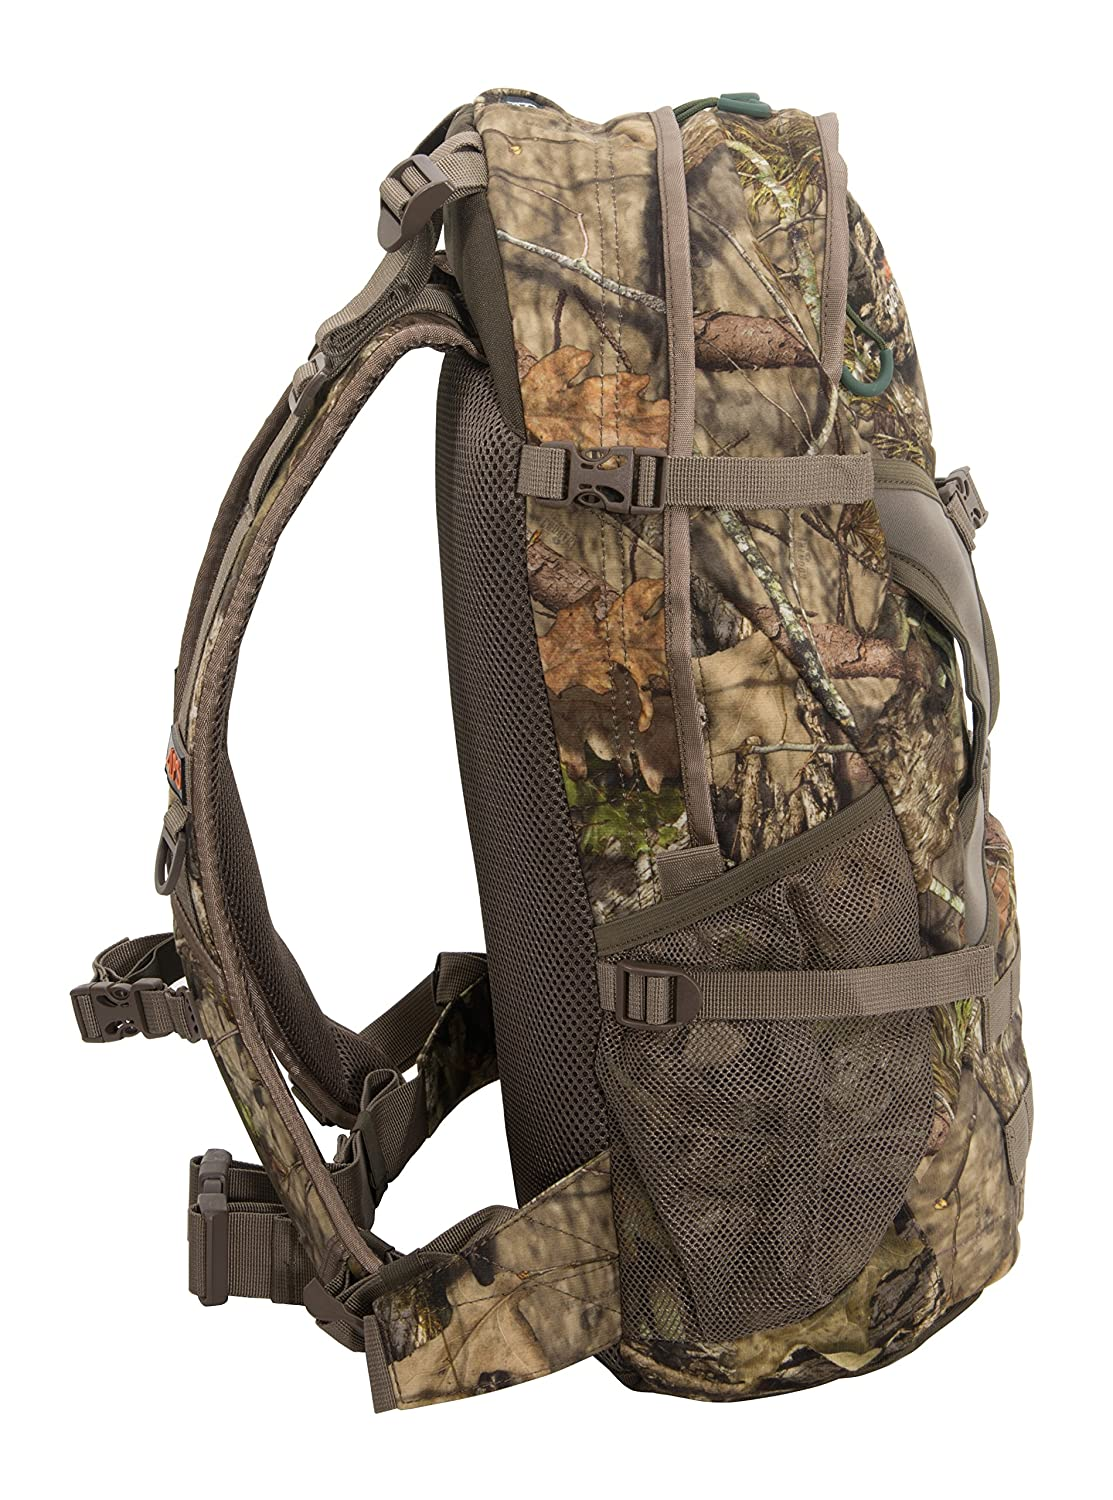 blaze orange backpack cover cheap   OFF31% The Largest Catalog Discounts c691e83430